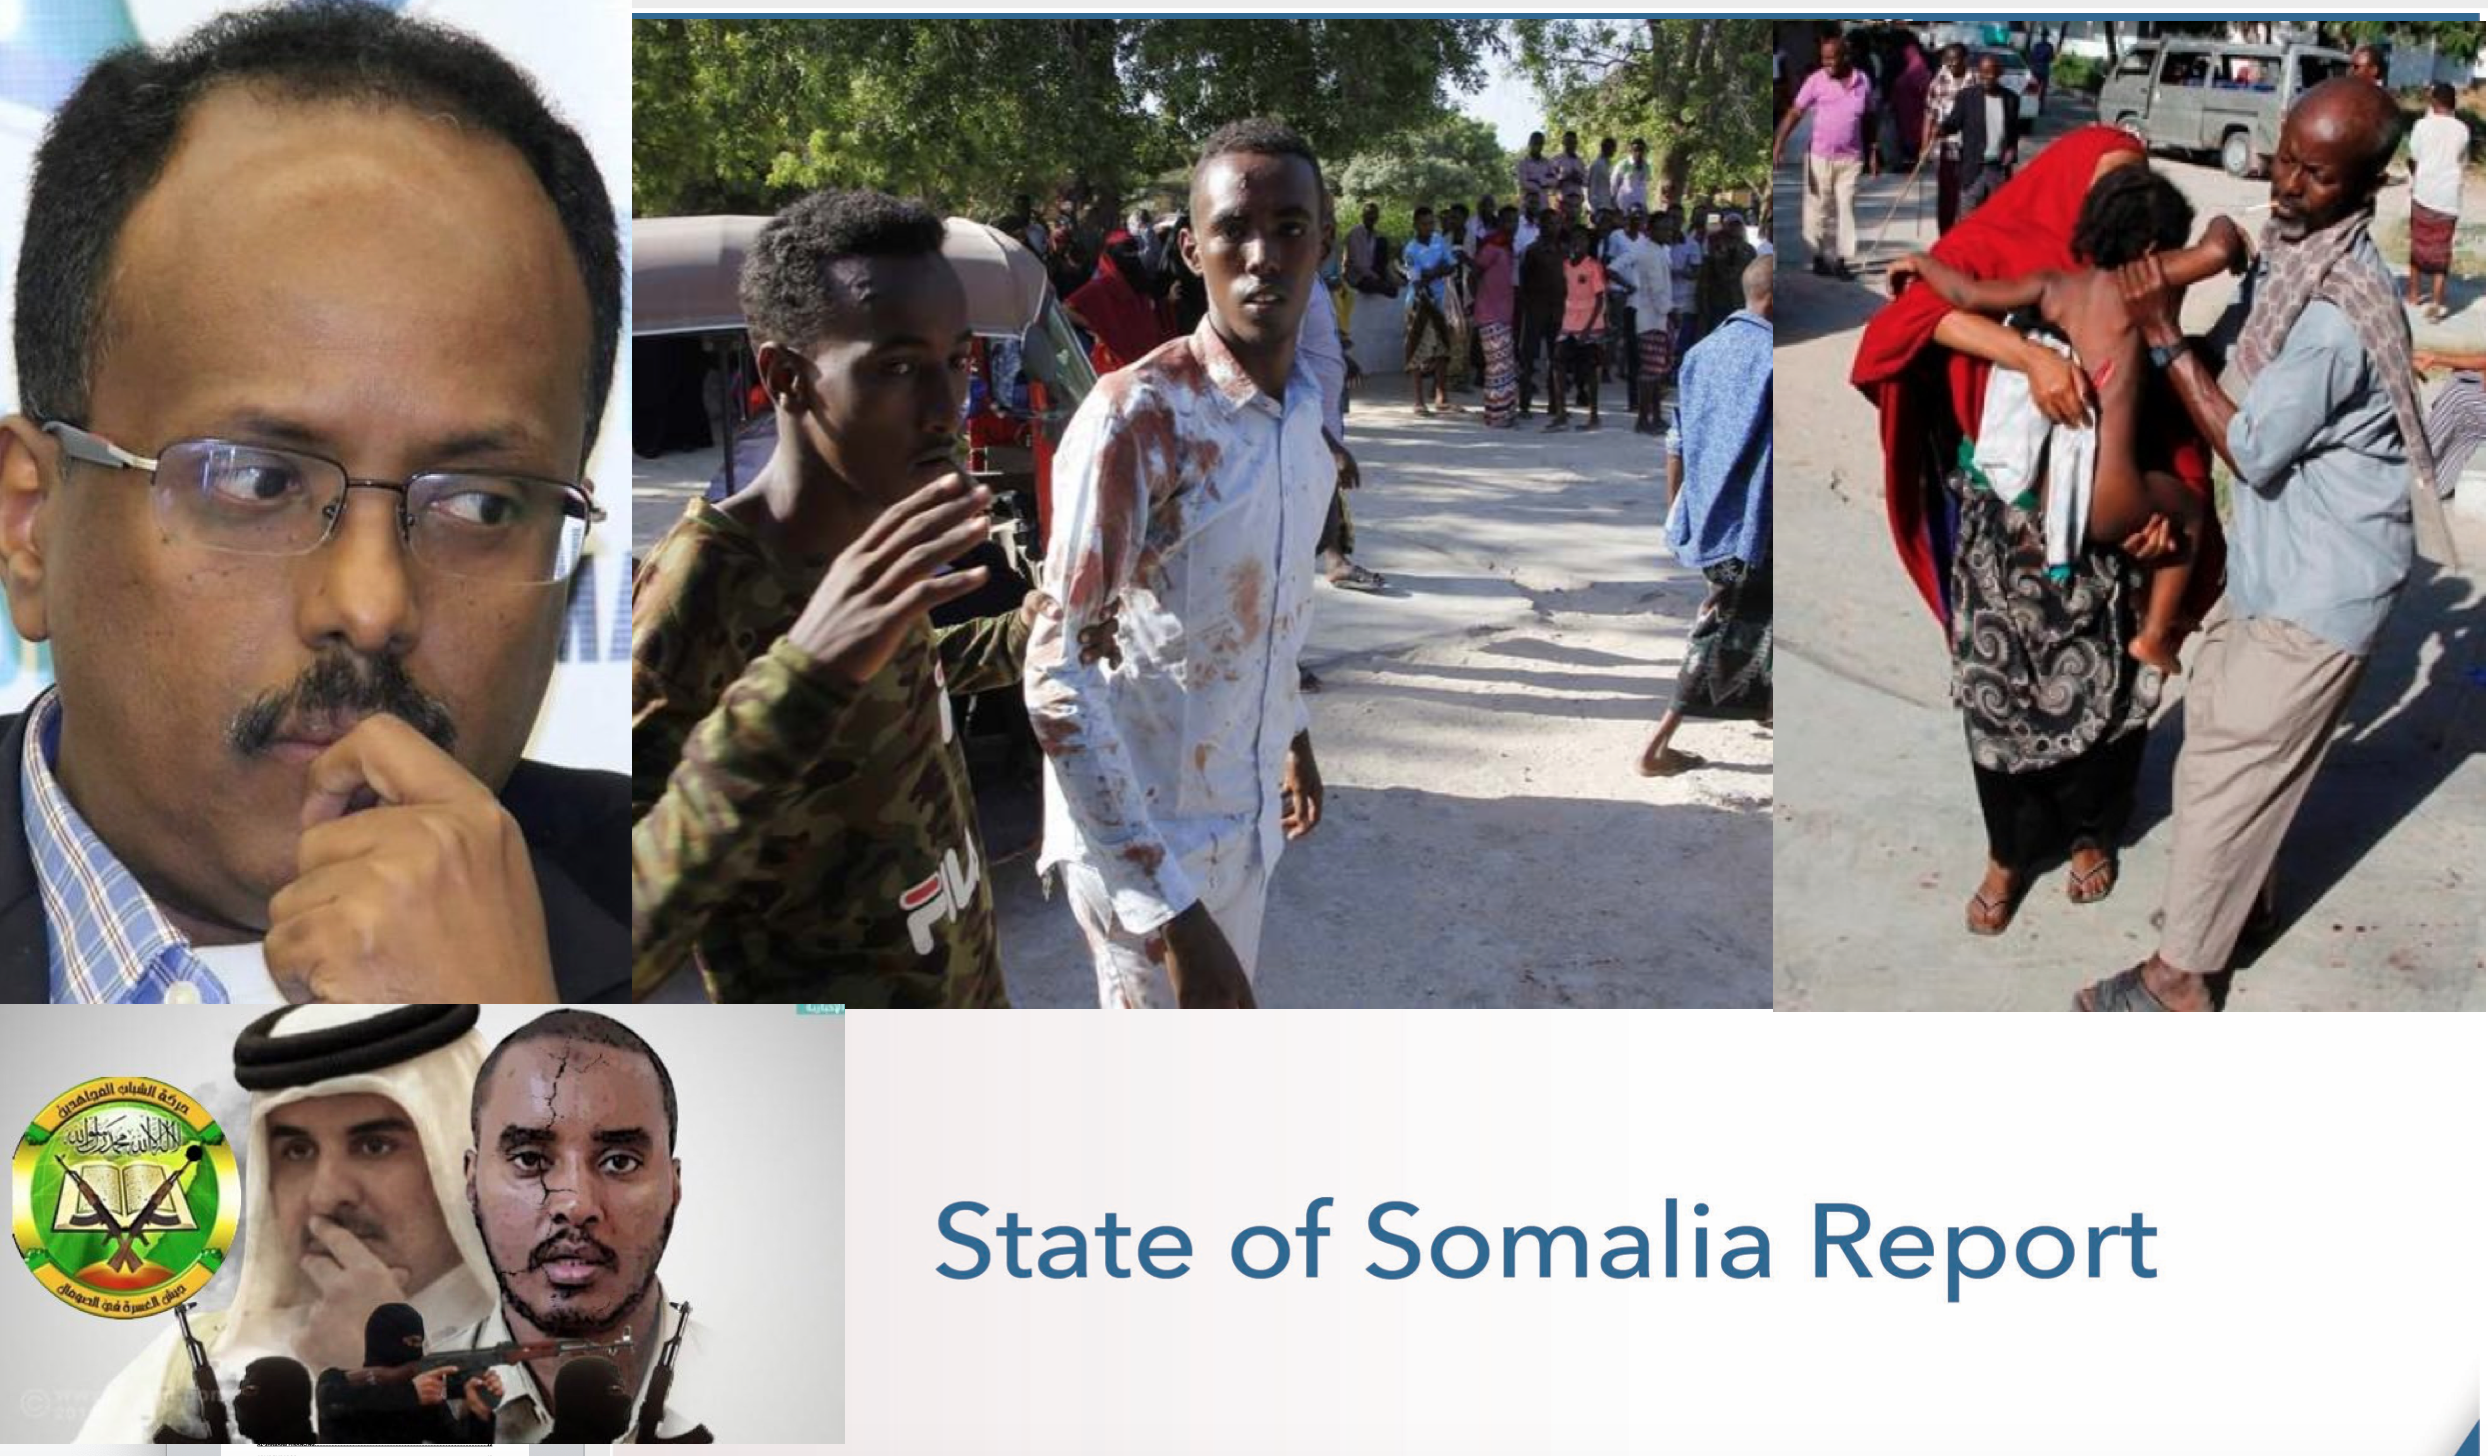 Somalia Report 2019 focuses on the main developments and key trends in politics, security, economy, social services